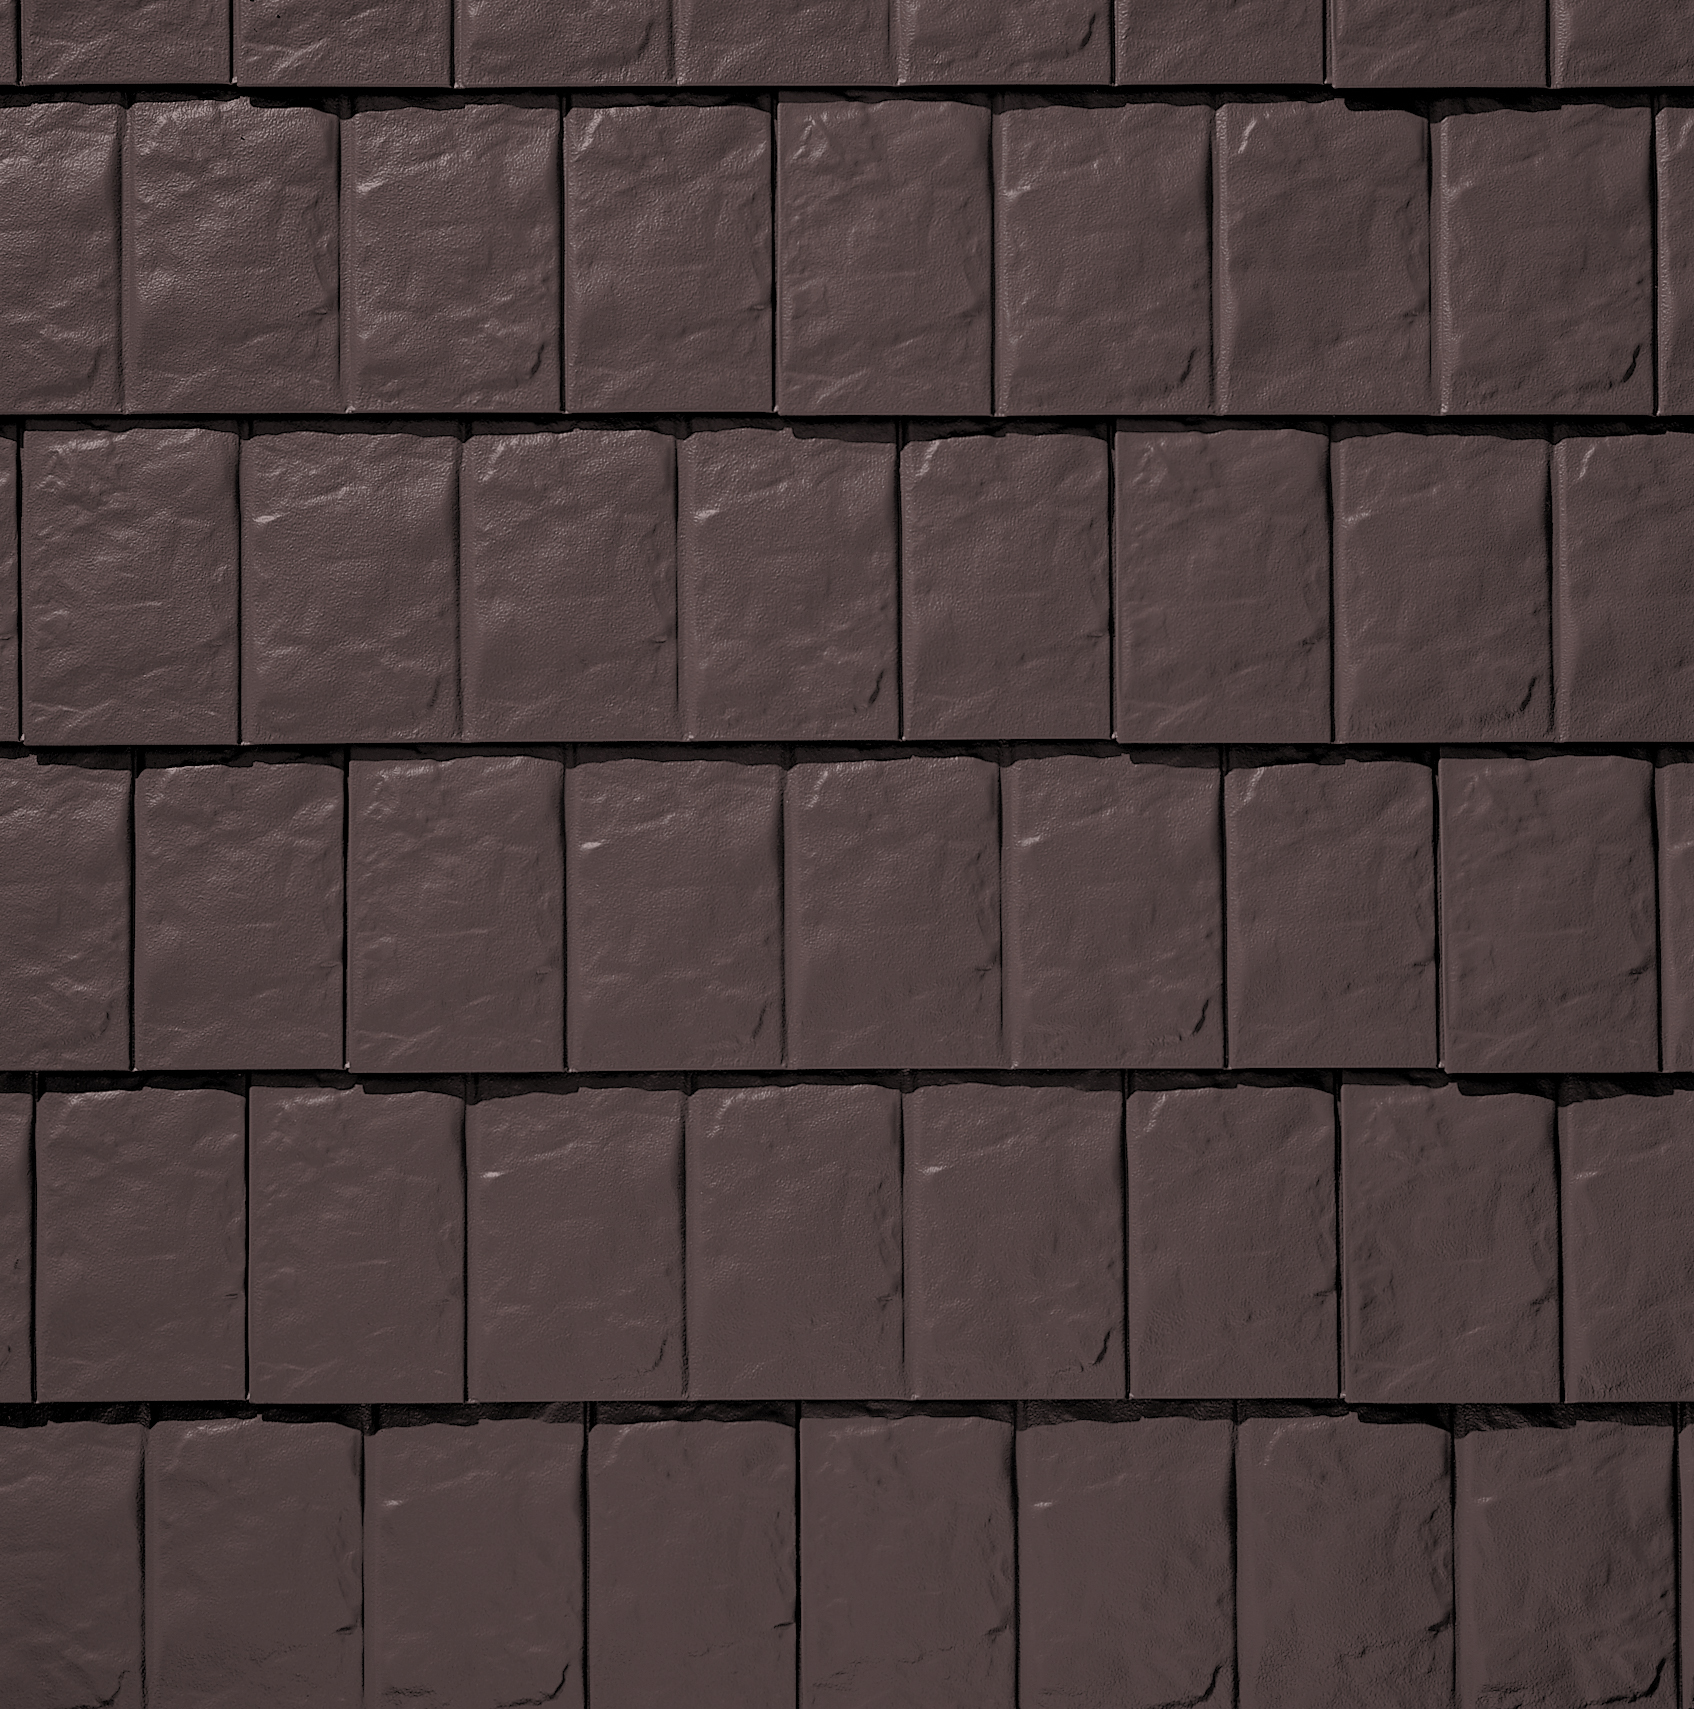 TAMKO MetalWorks StoneCrest Slate - Timber Brown